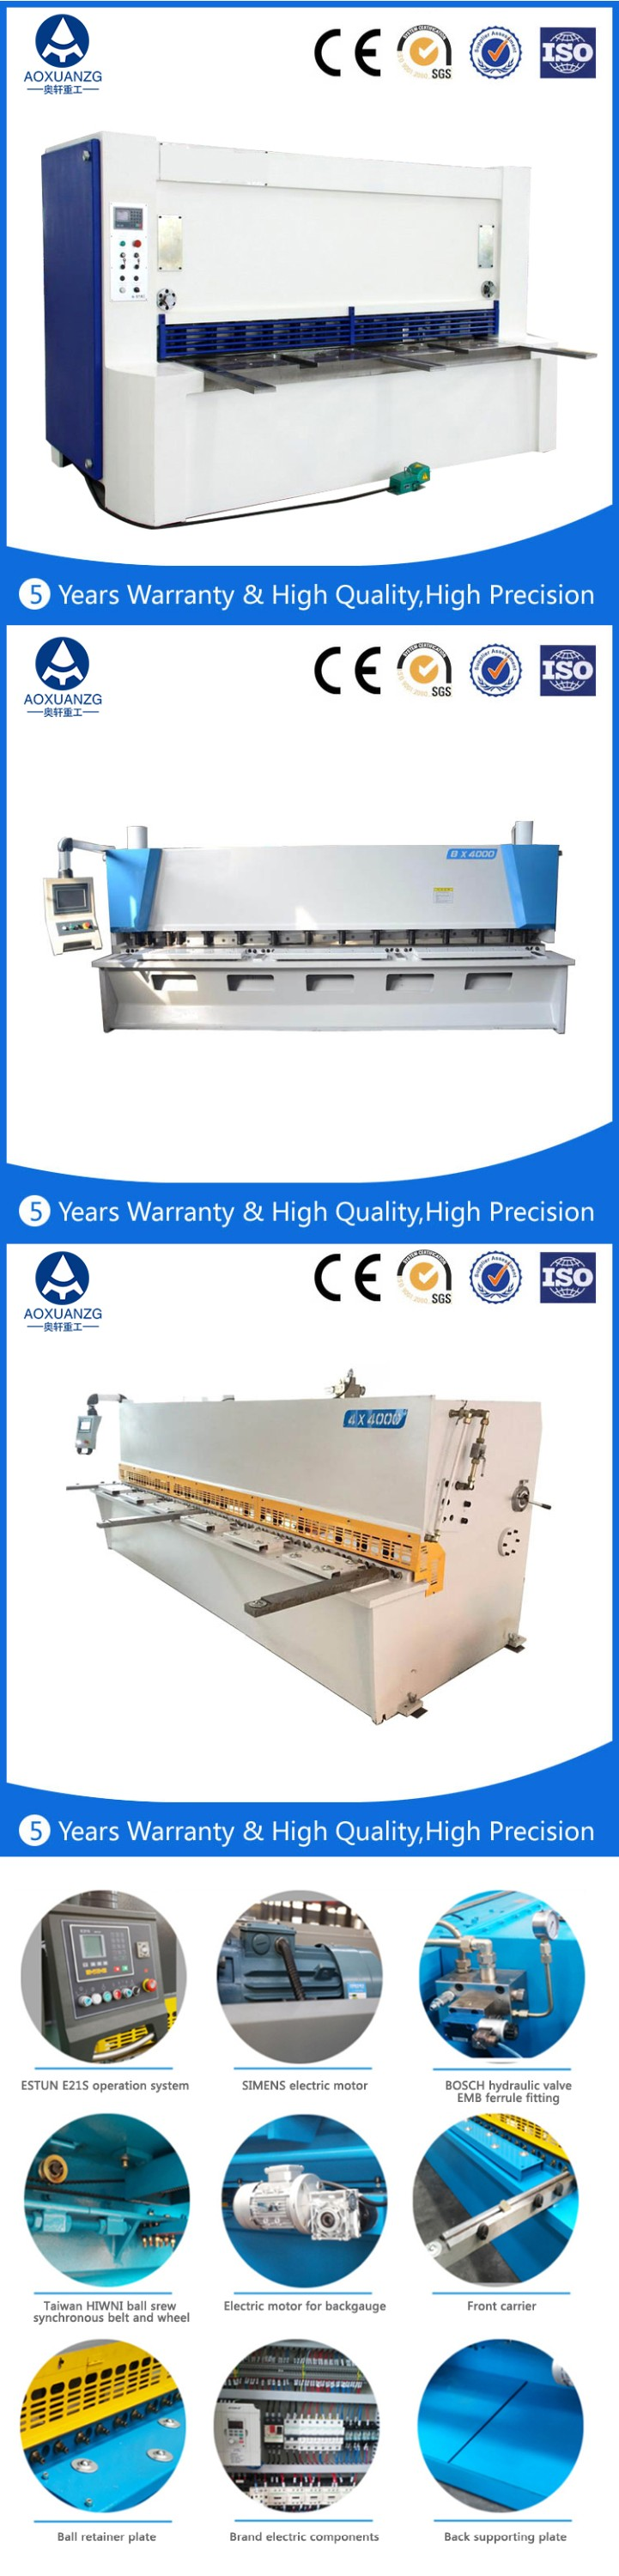 Alibaba Best Manufacturer Top Quality QC12K QC11K Amada 6mm 8mm 12mm 16mm Hydraulic Shearing Machine